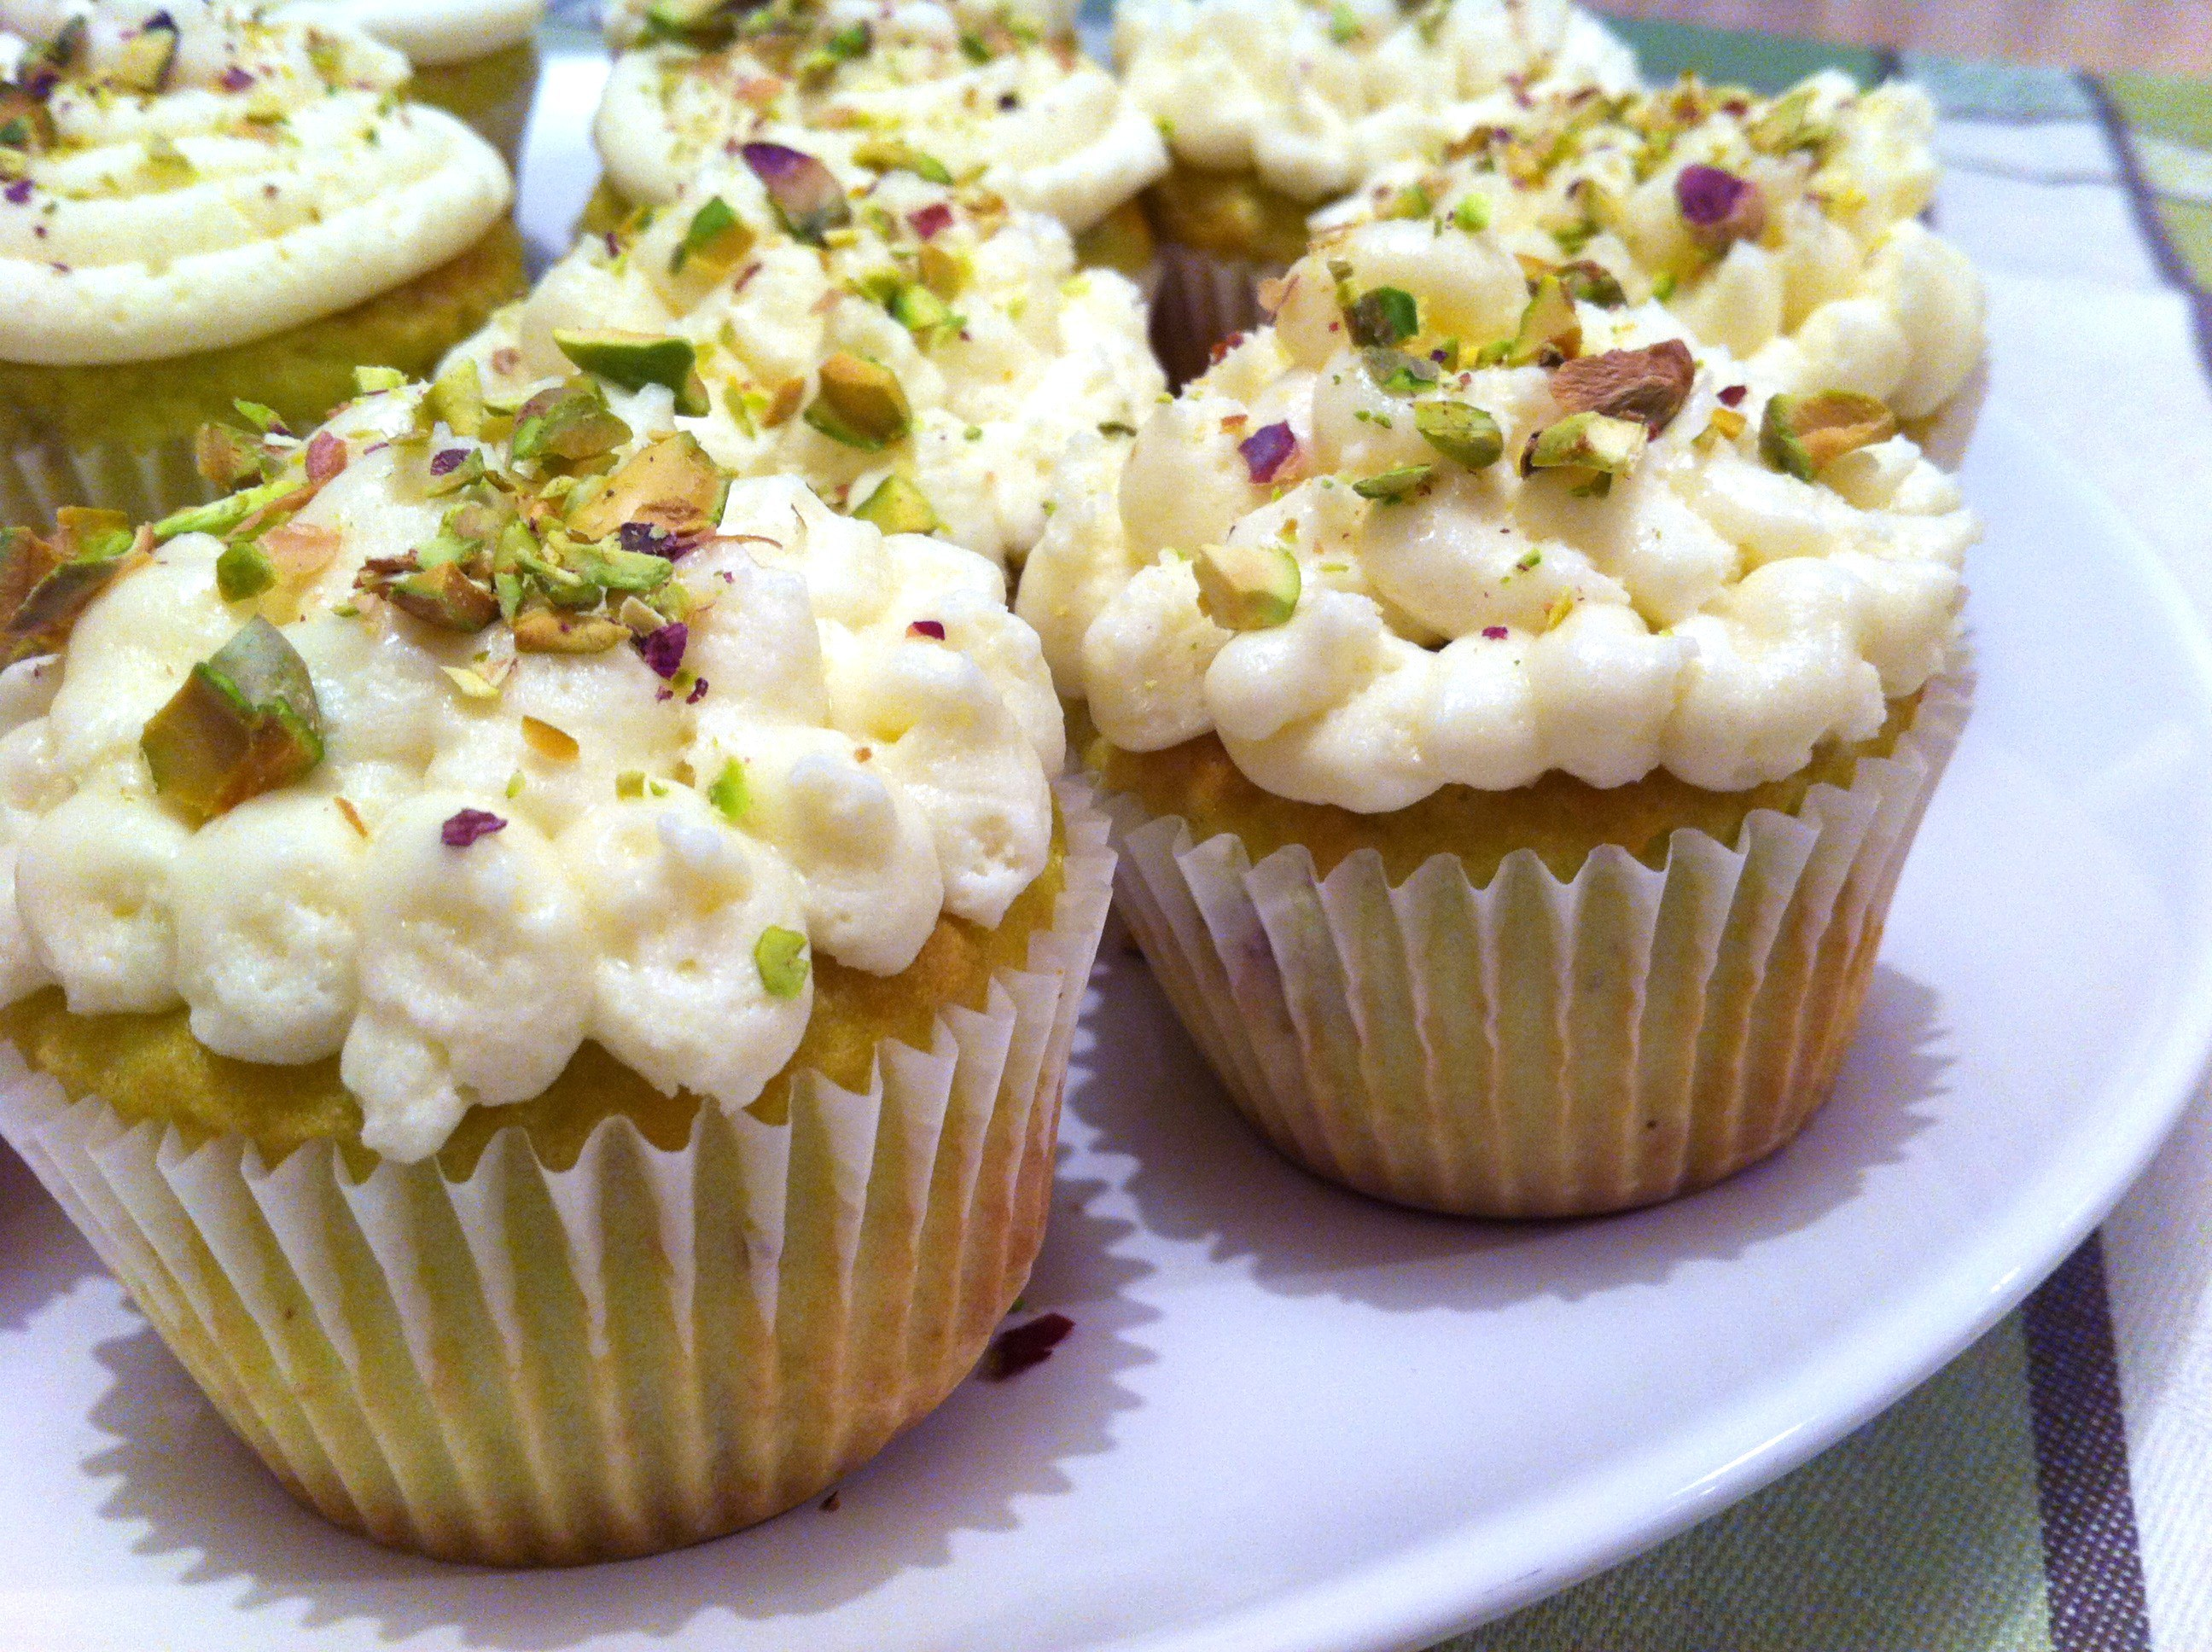 Pistachio Cupcakes with Cream Cheese Frosting - Andicakes